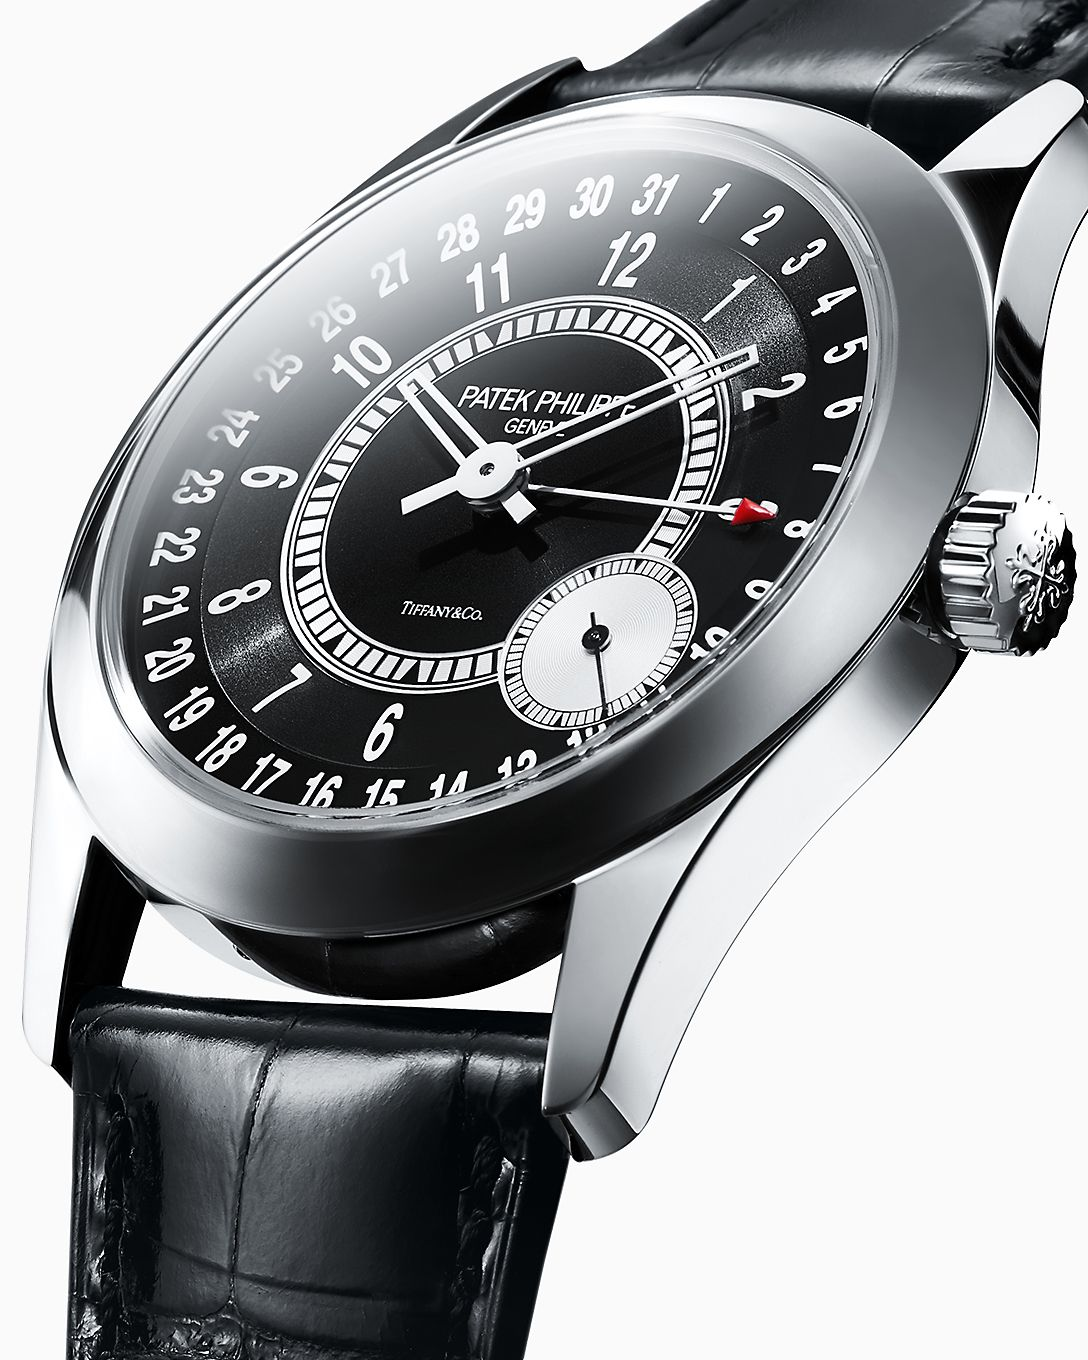 Tiffany & Co. and Patek Philippe Watches